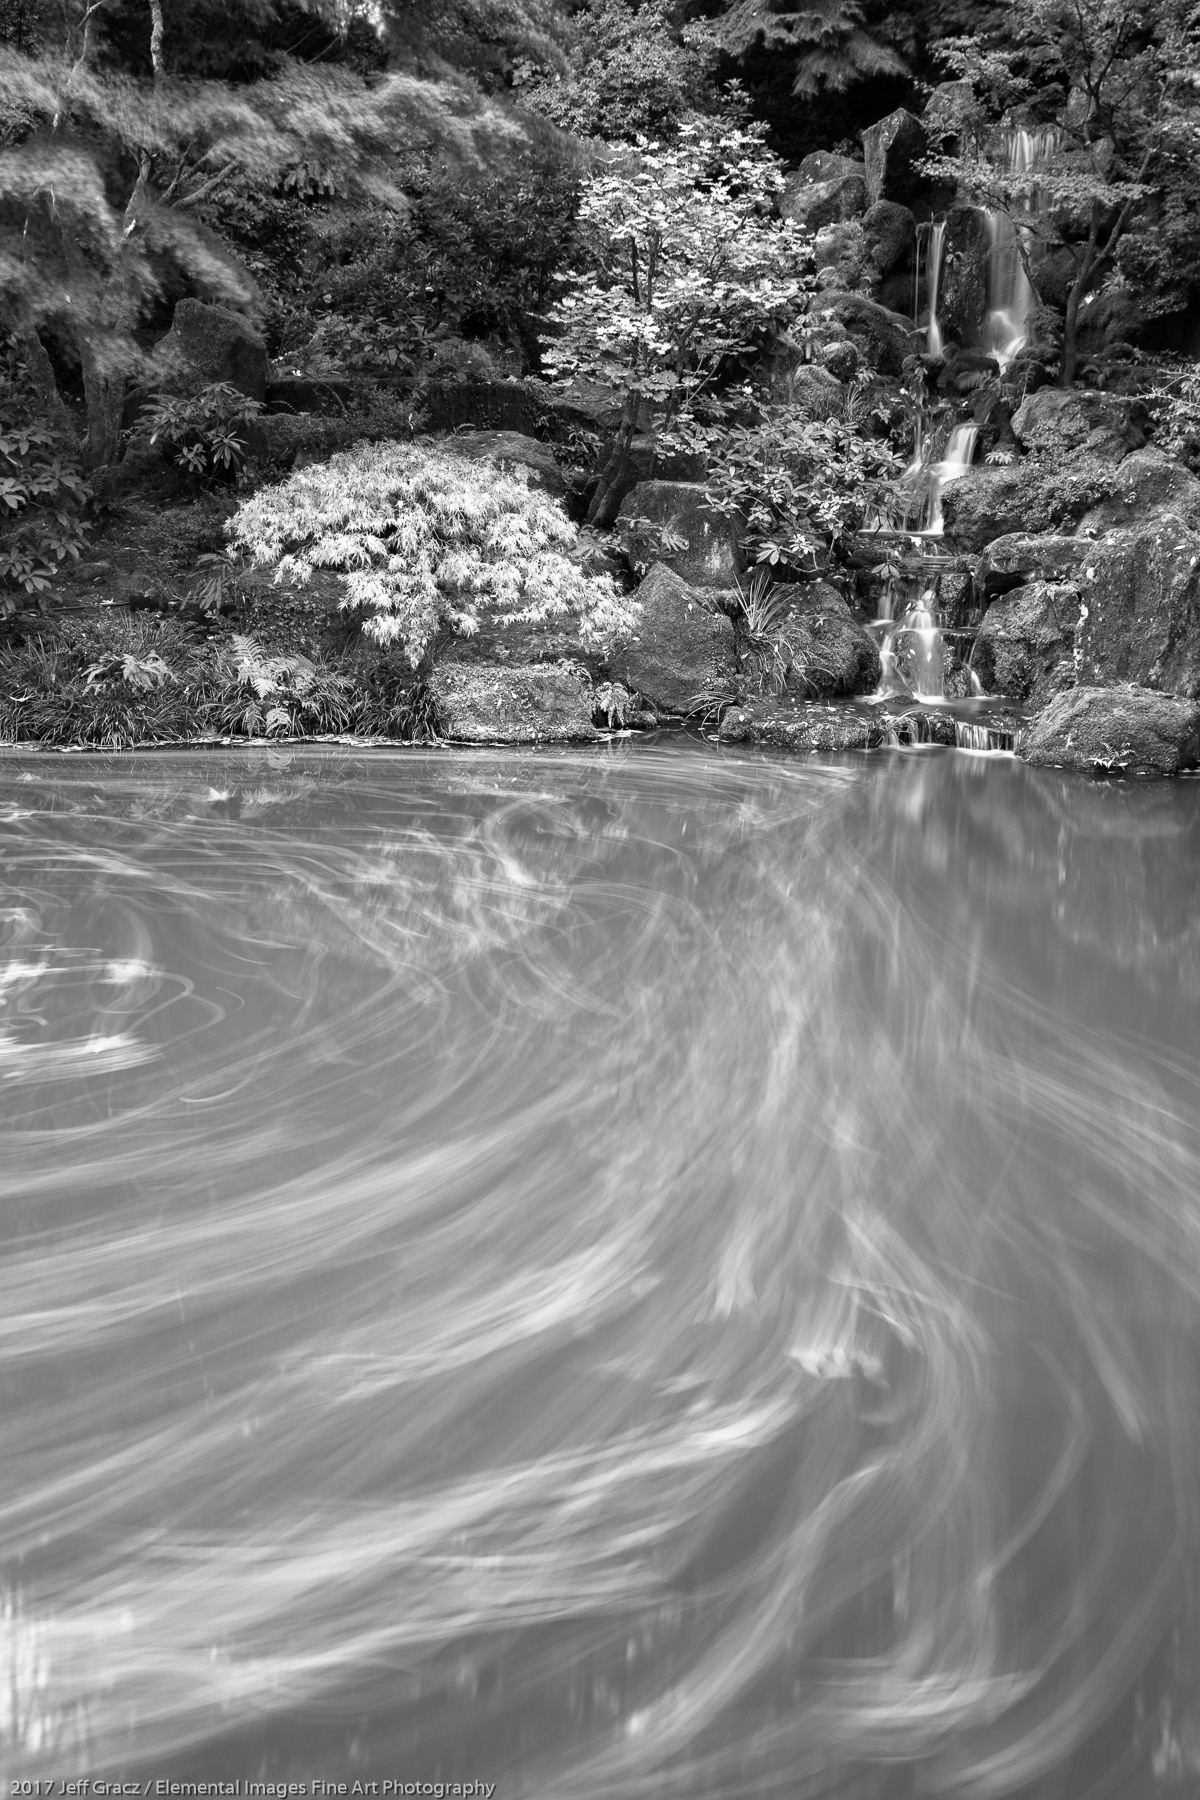 Garden Pond with Flowing Leaves | Portland | OR | USA - © 2017 Jeff Gracz / Elemental Images Fine Art Photography - All Rights Reserved Worldwide